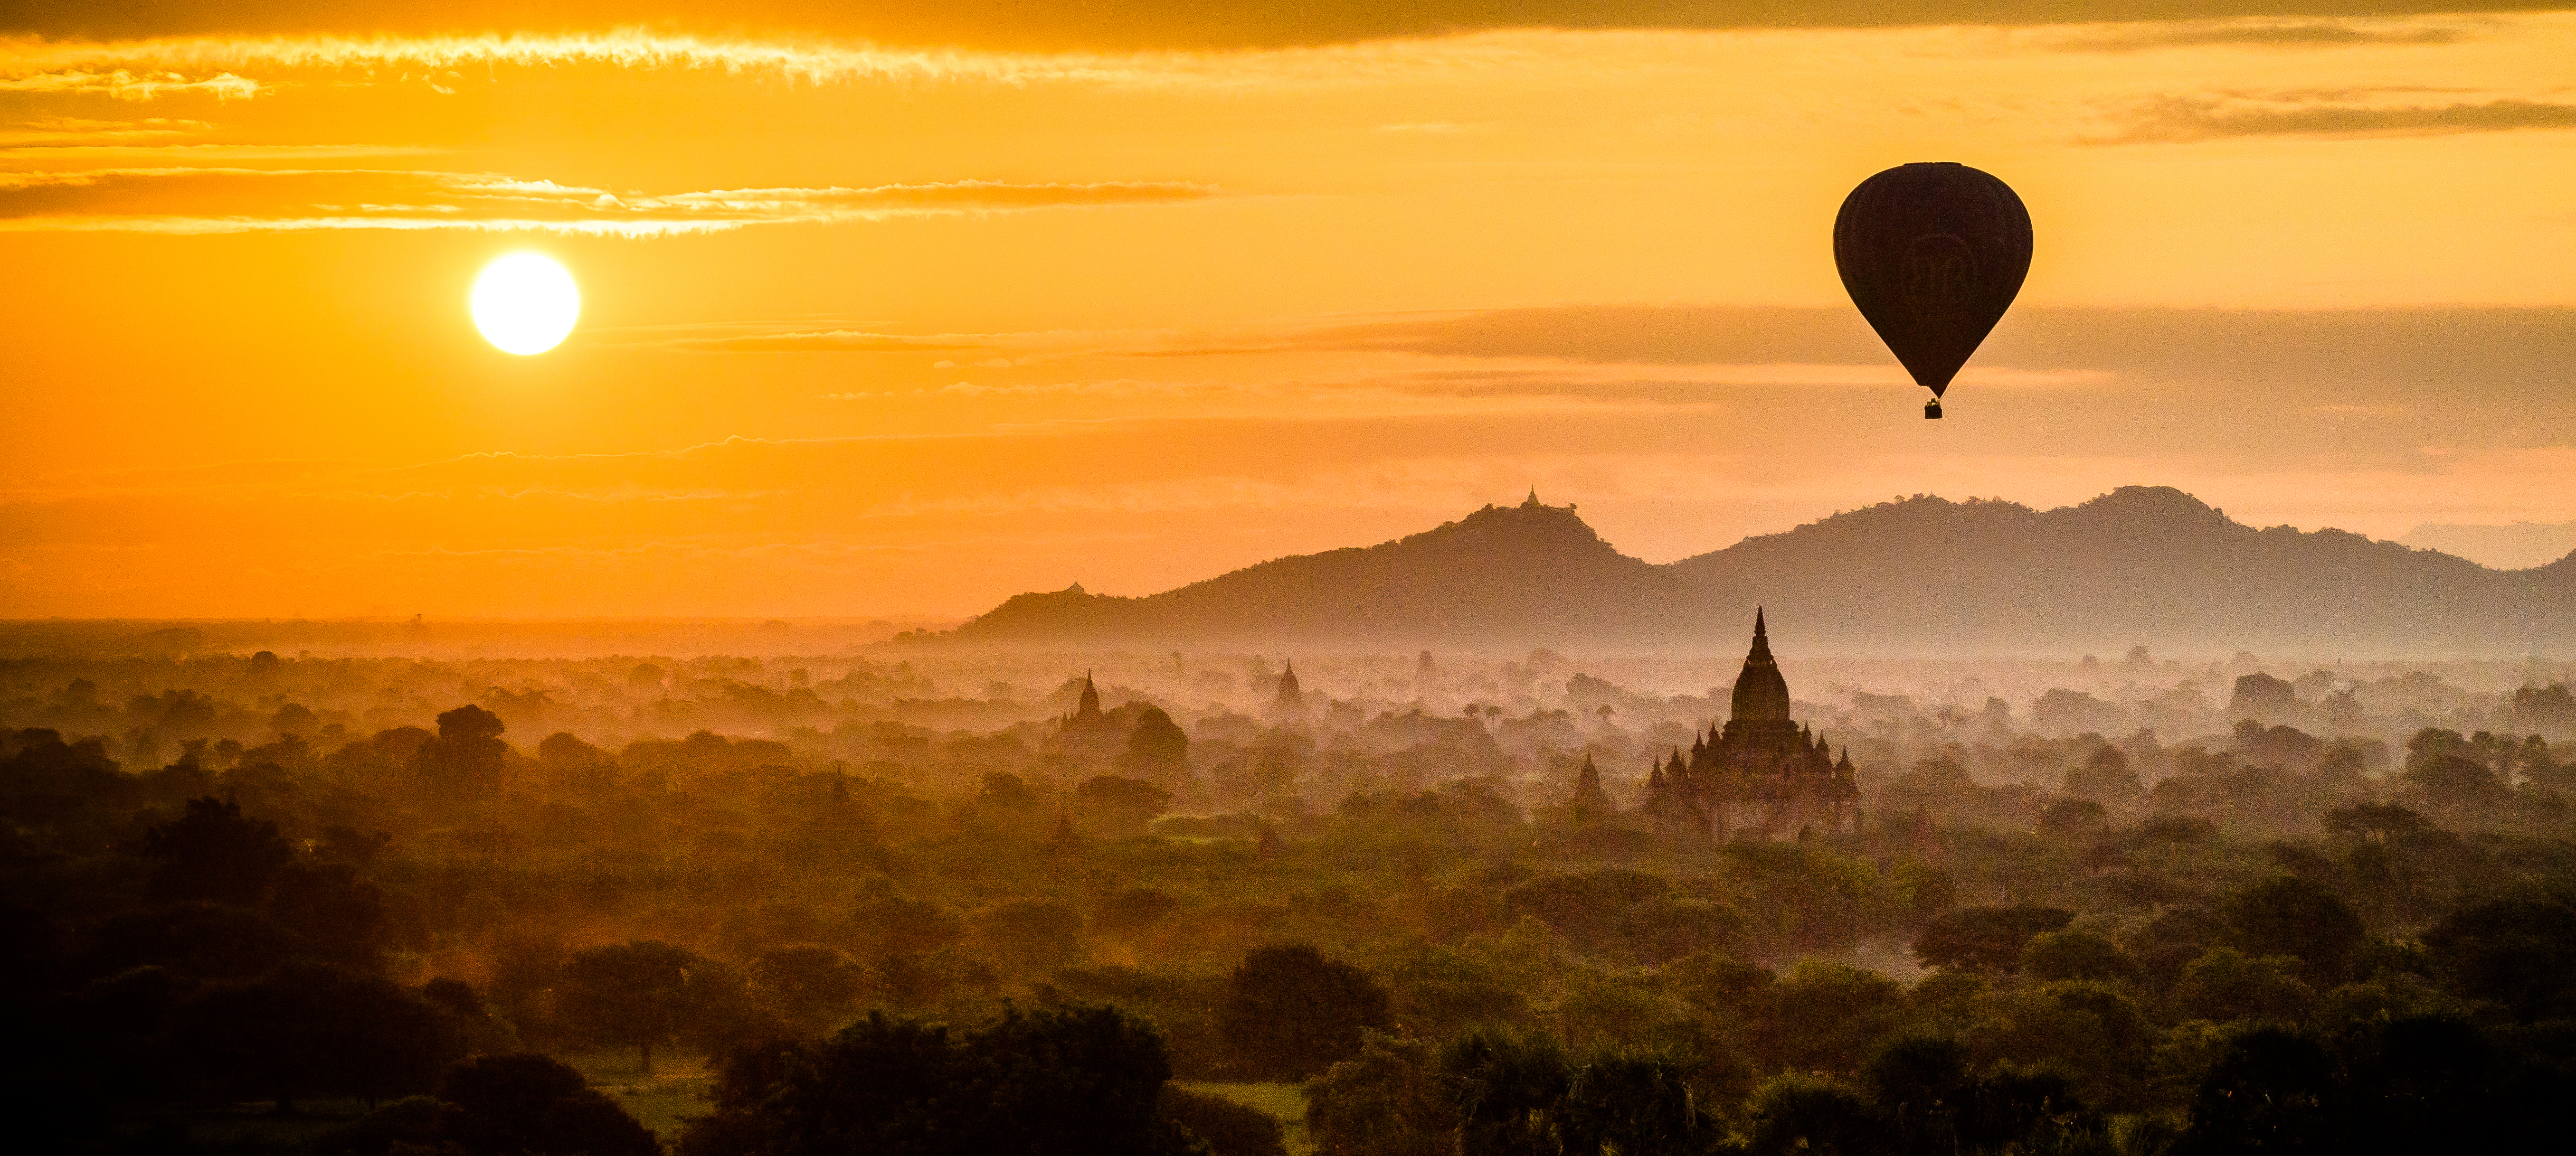 temples-bagan-valley